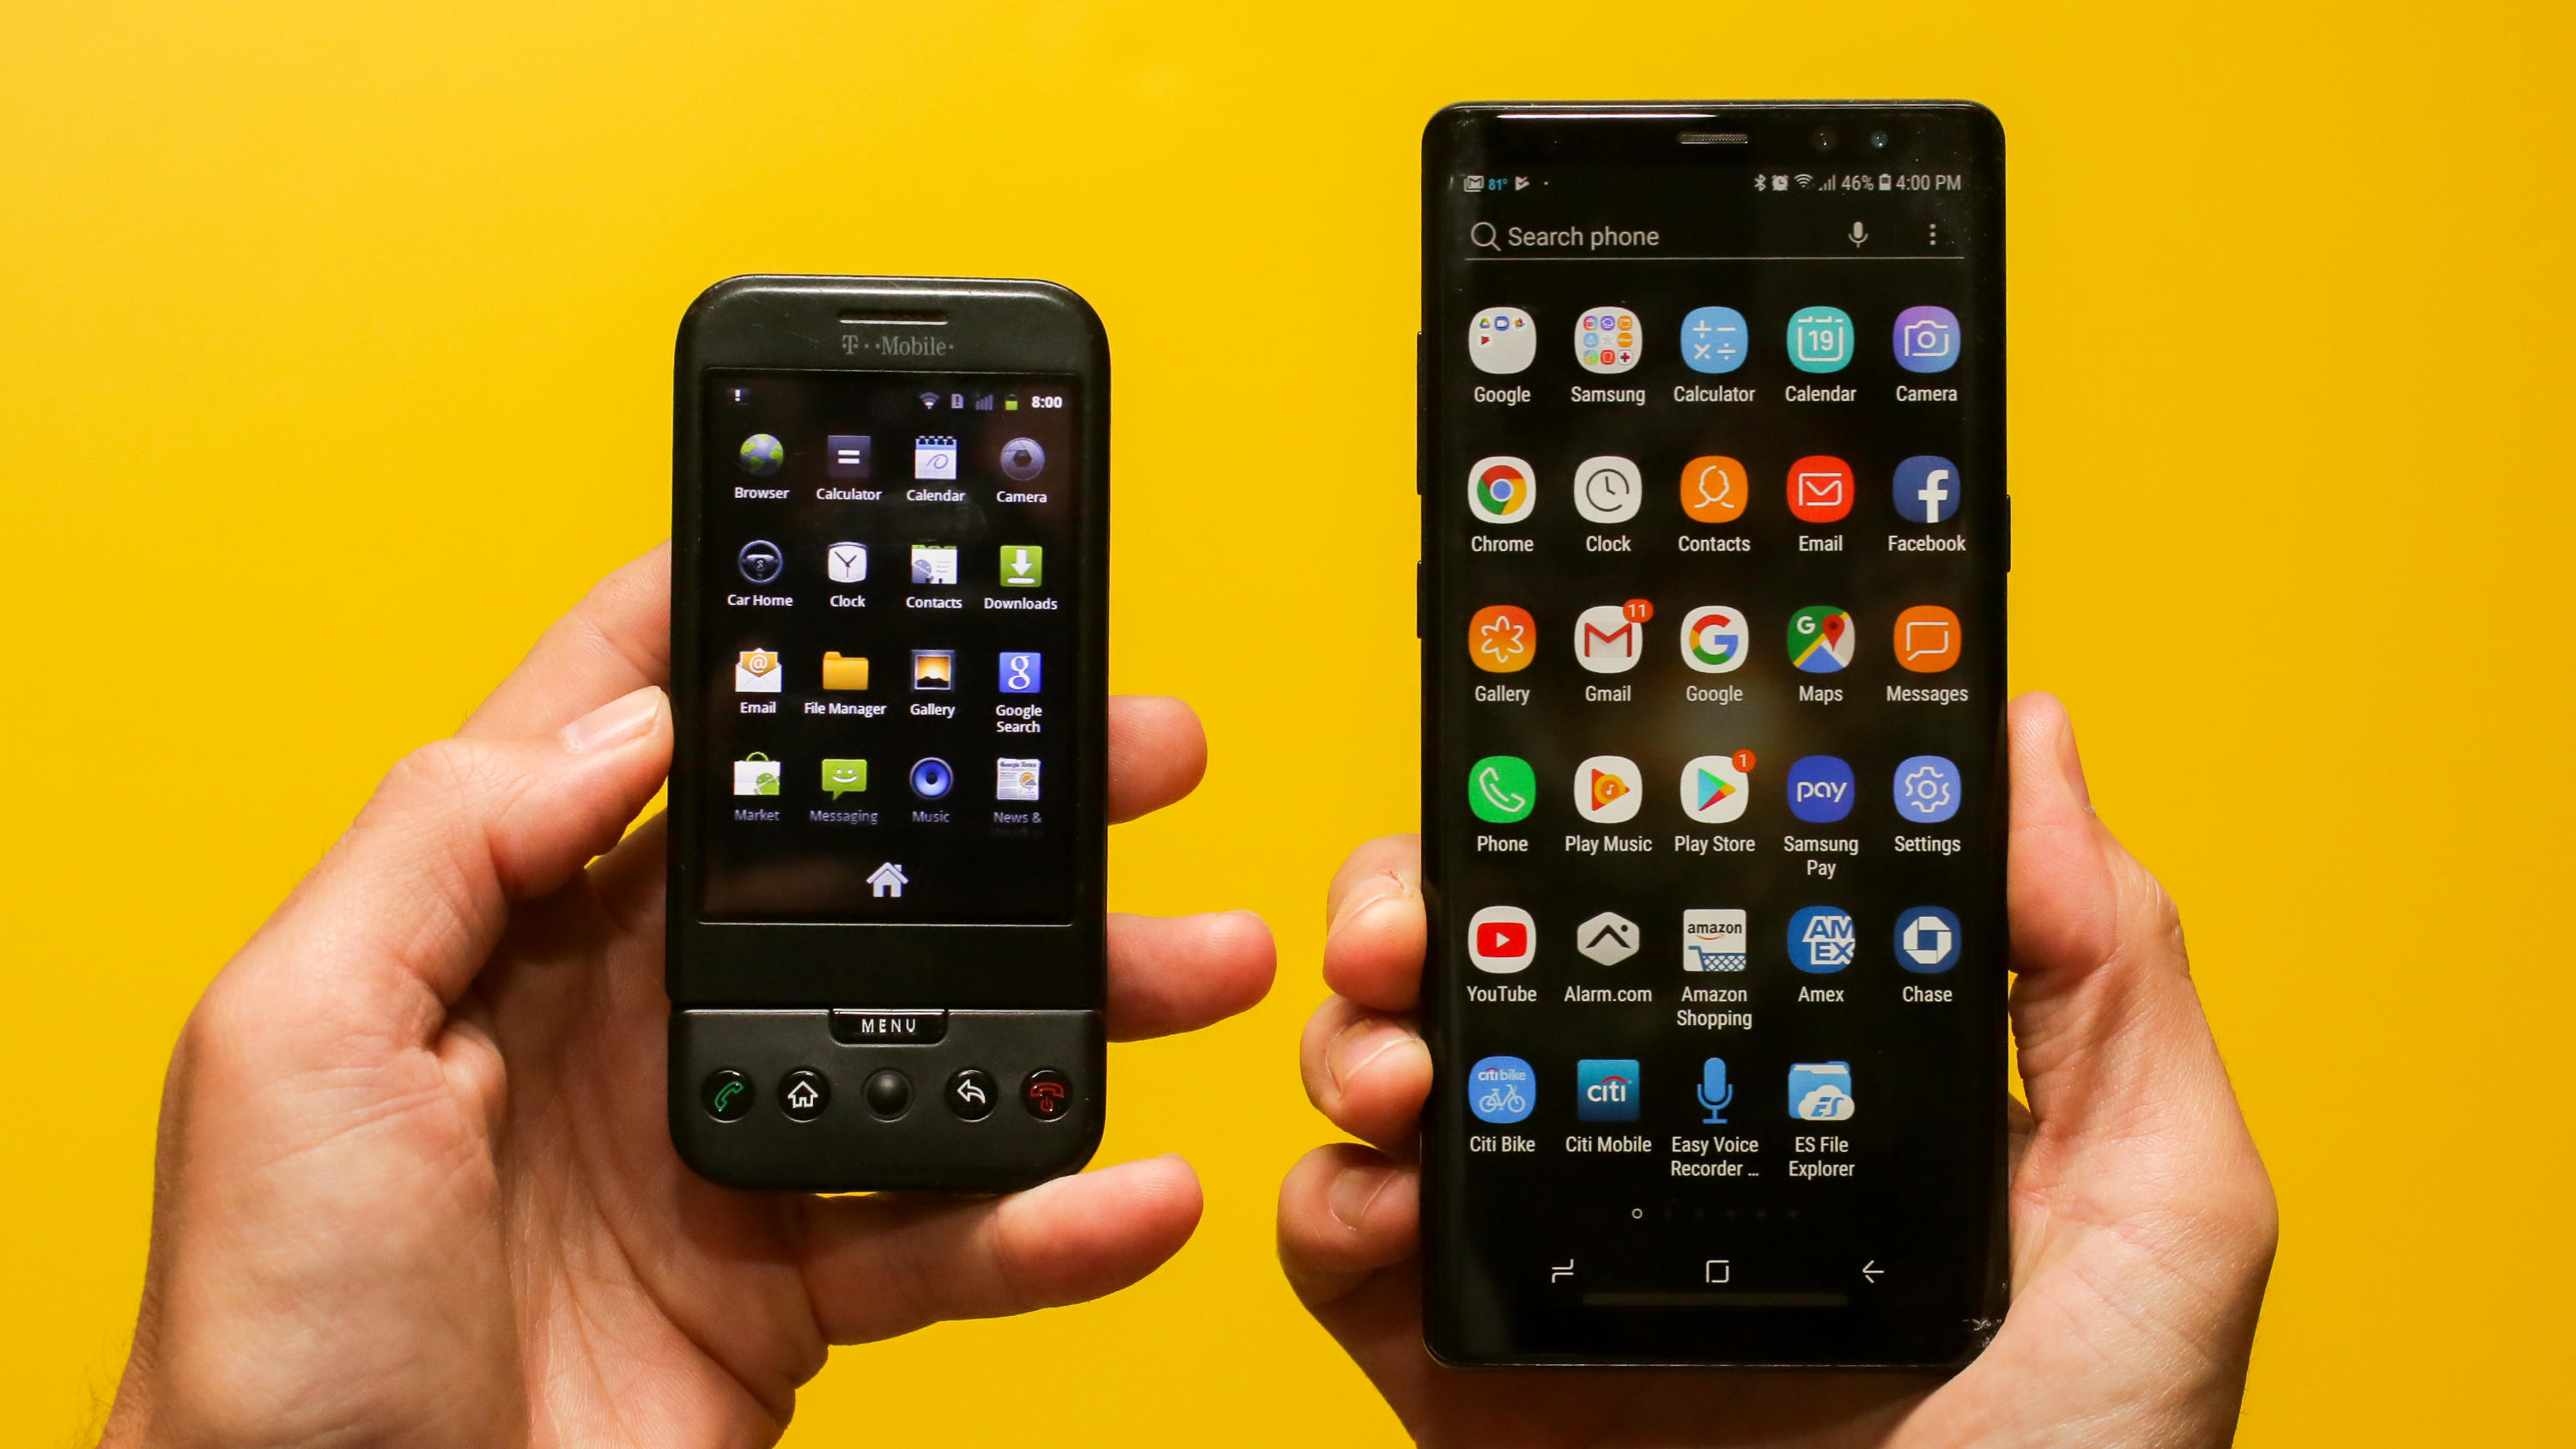 iPhone, Galaxy S, Pixel: How smartphones evolved to dominate your life -  CNET